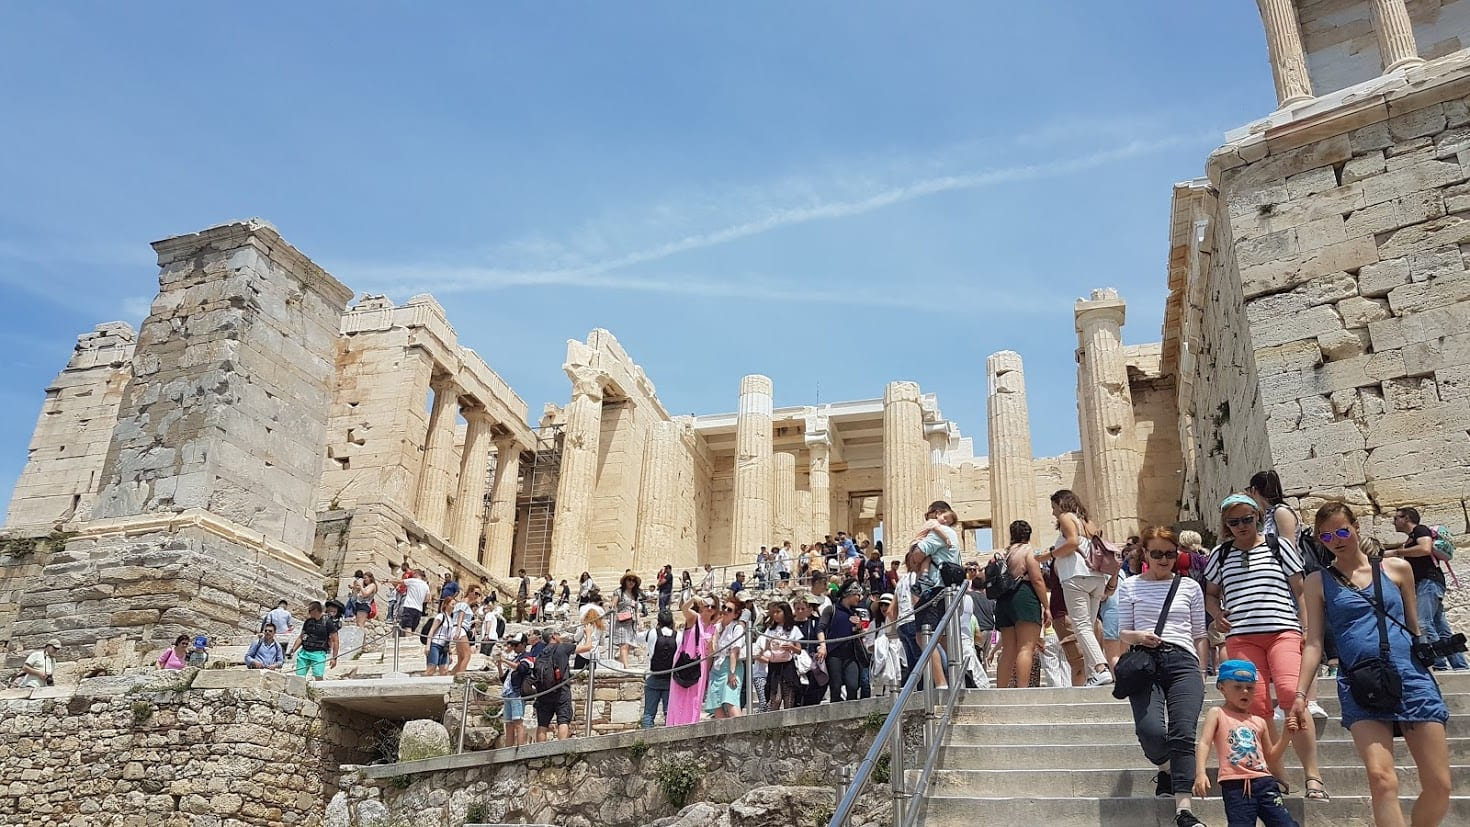 Walking up the Acropolis in Athens